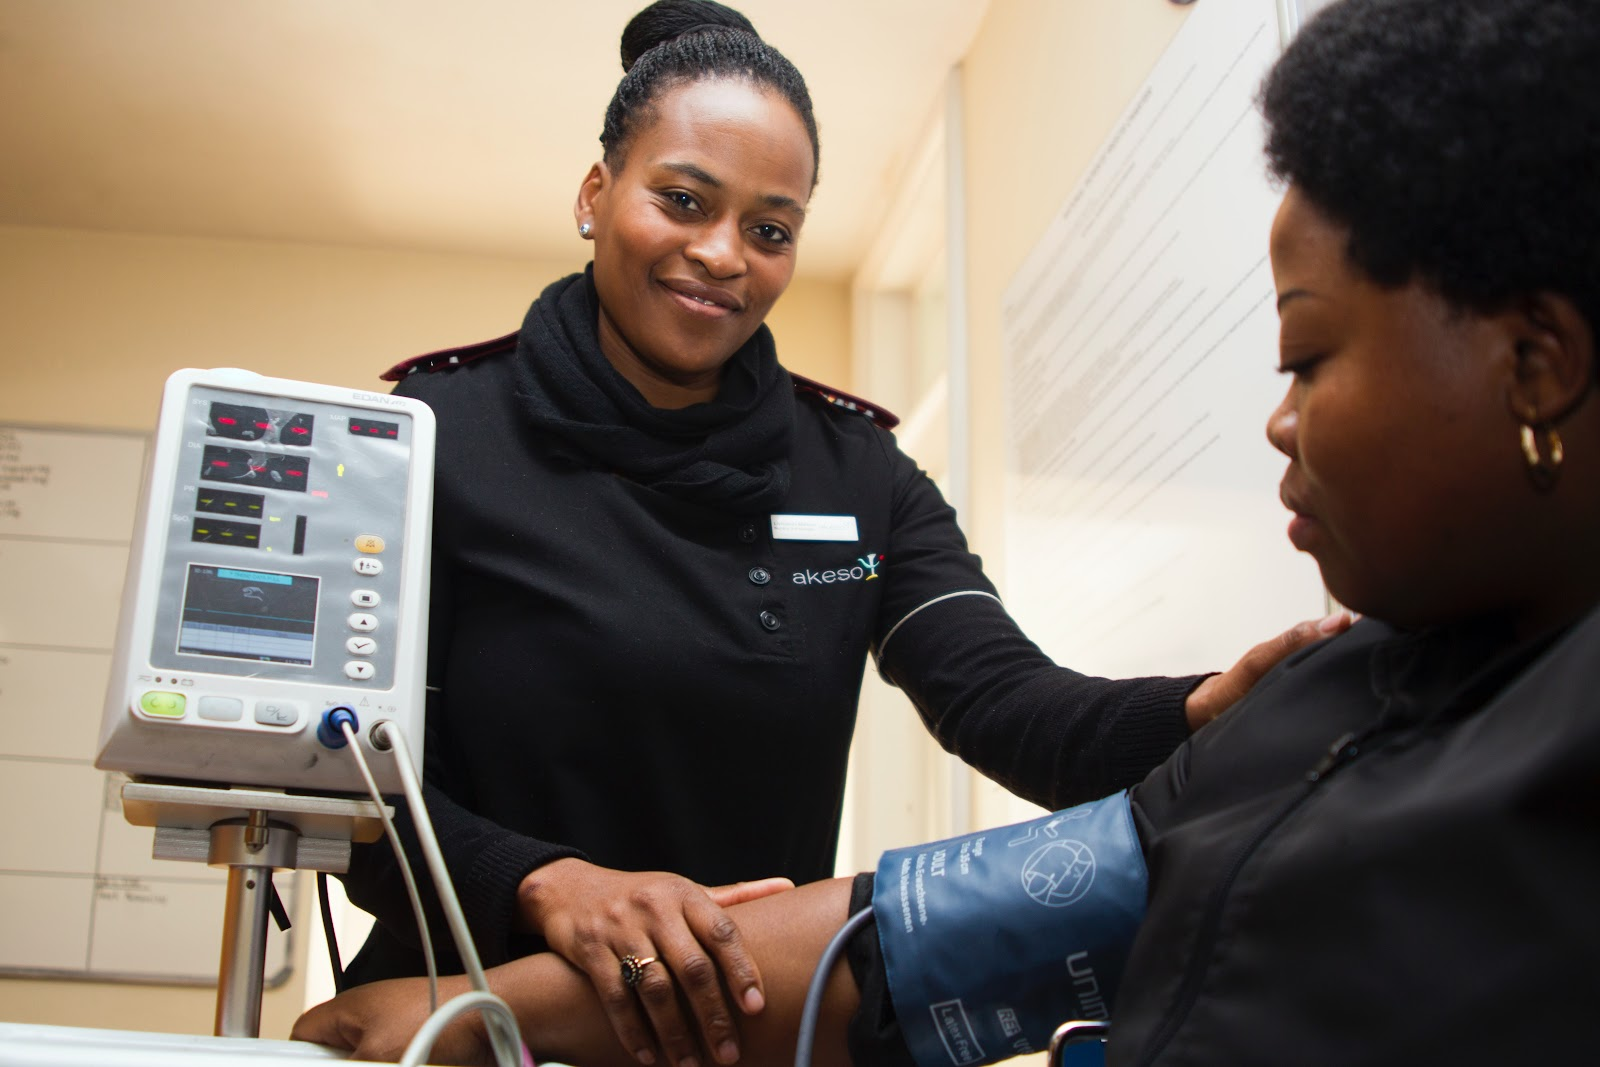 A smiling nurse who has applied a blood pressure cuff onto a seated woman's arm looks into the camera as the machine takes a reading.